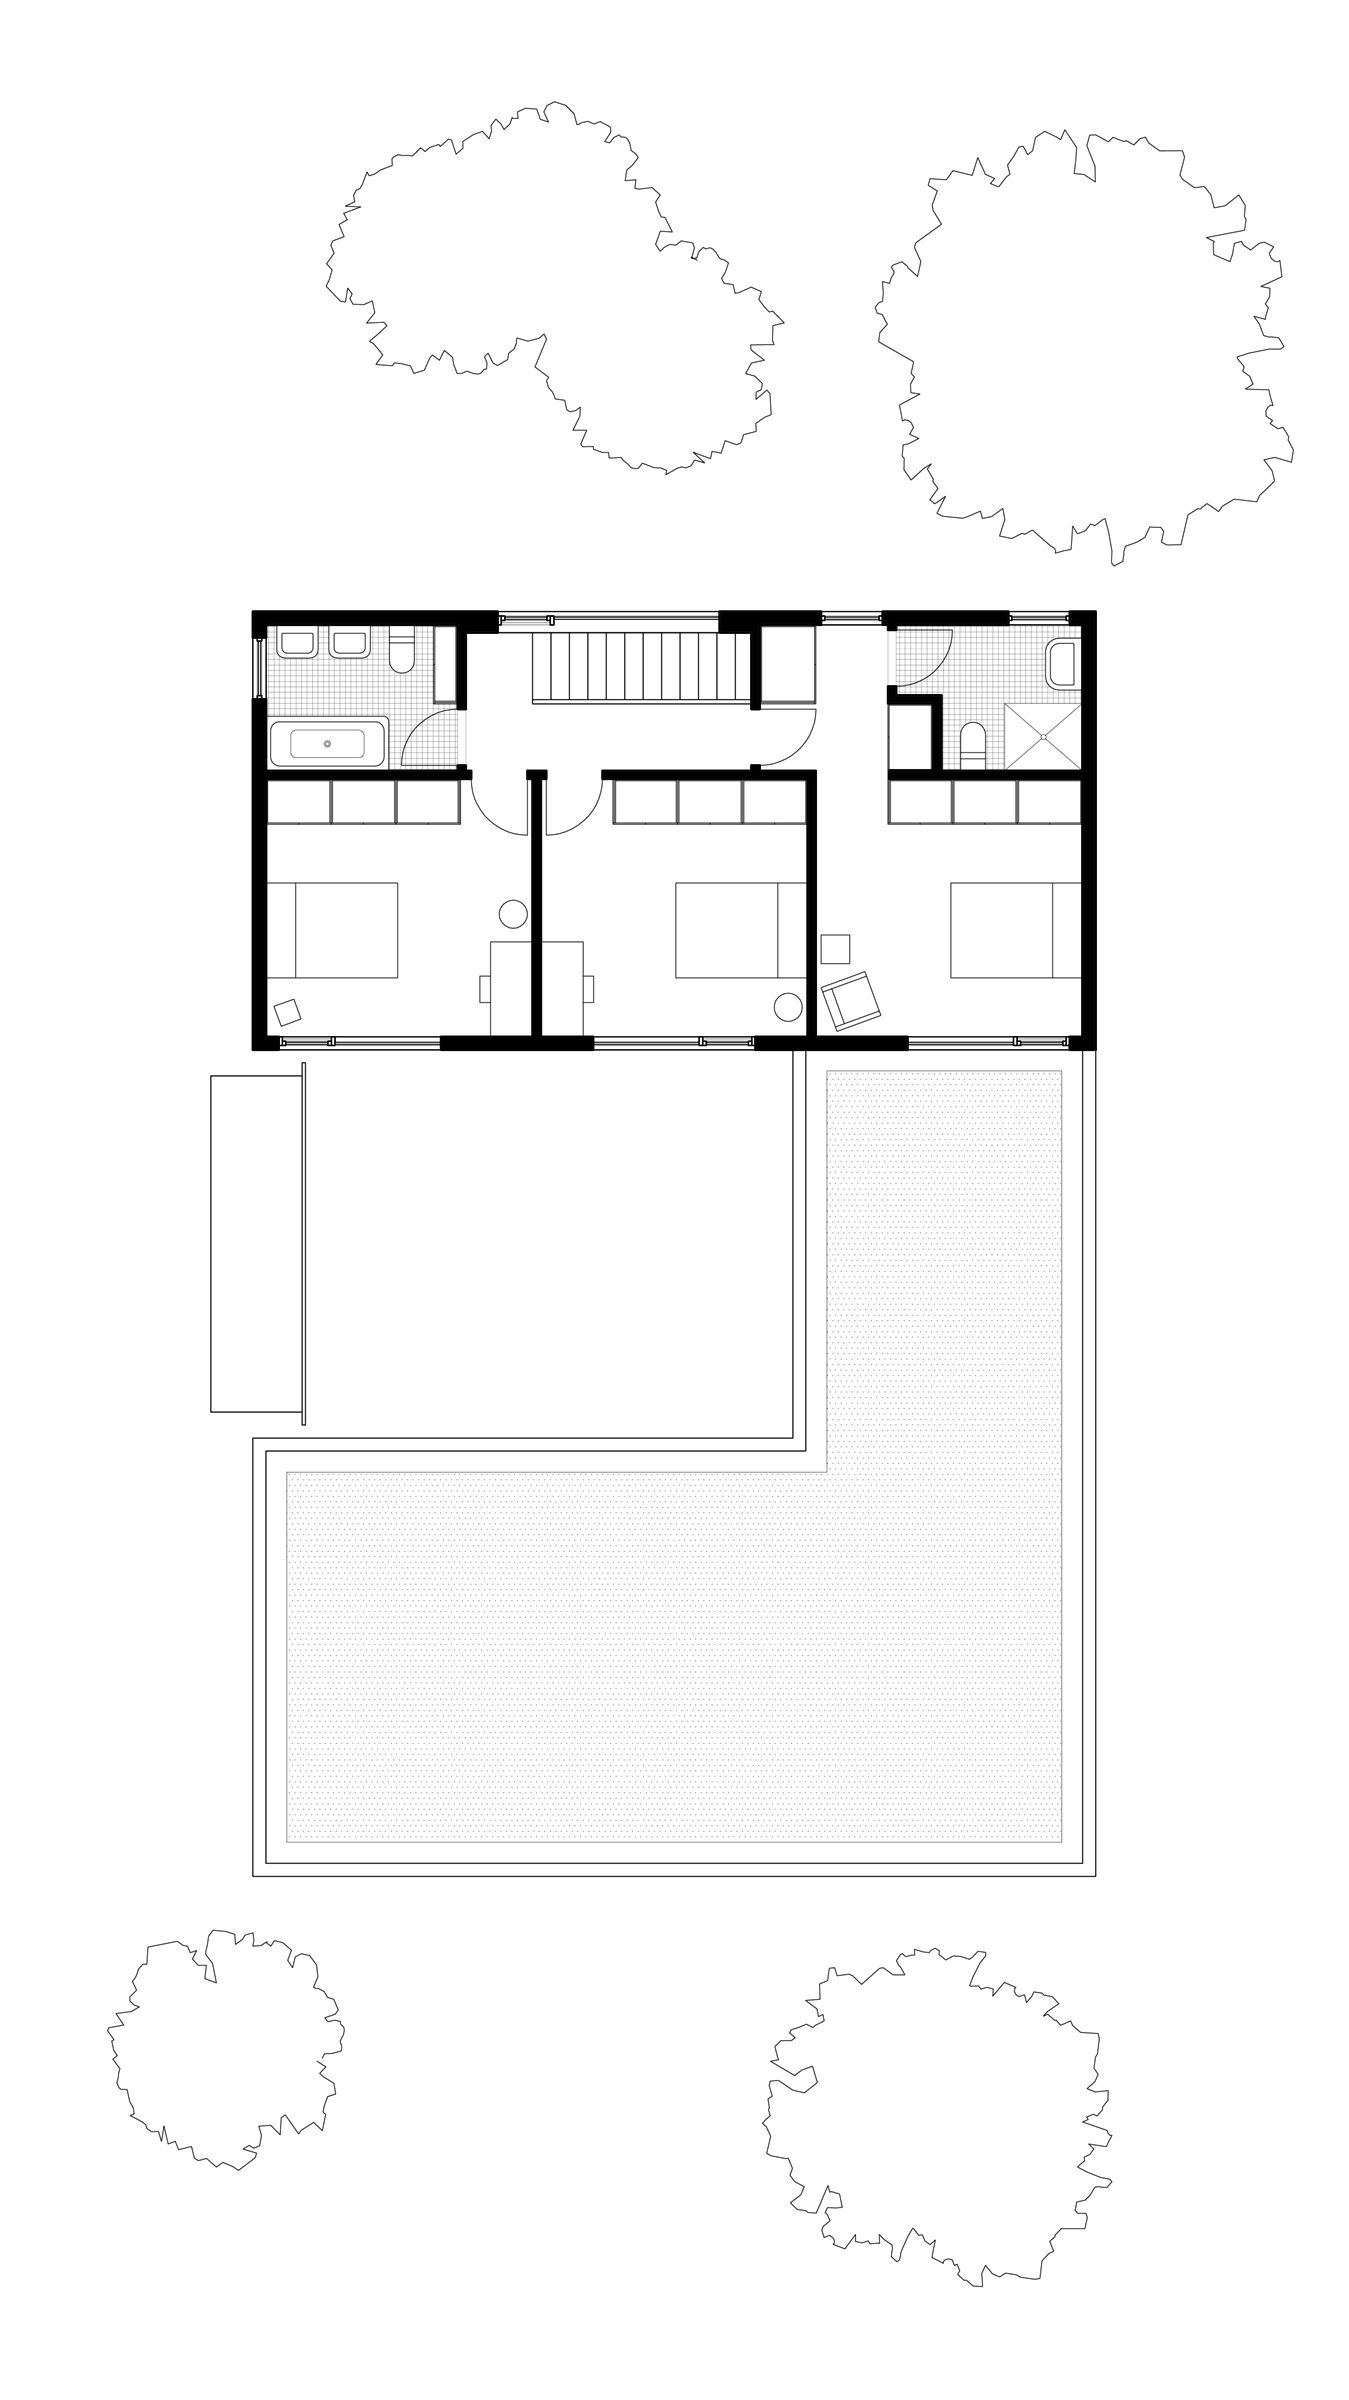 West Linn House second floor plan